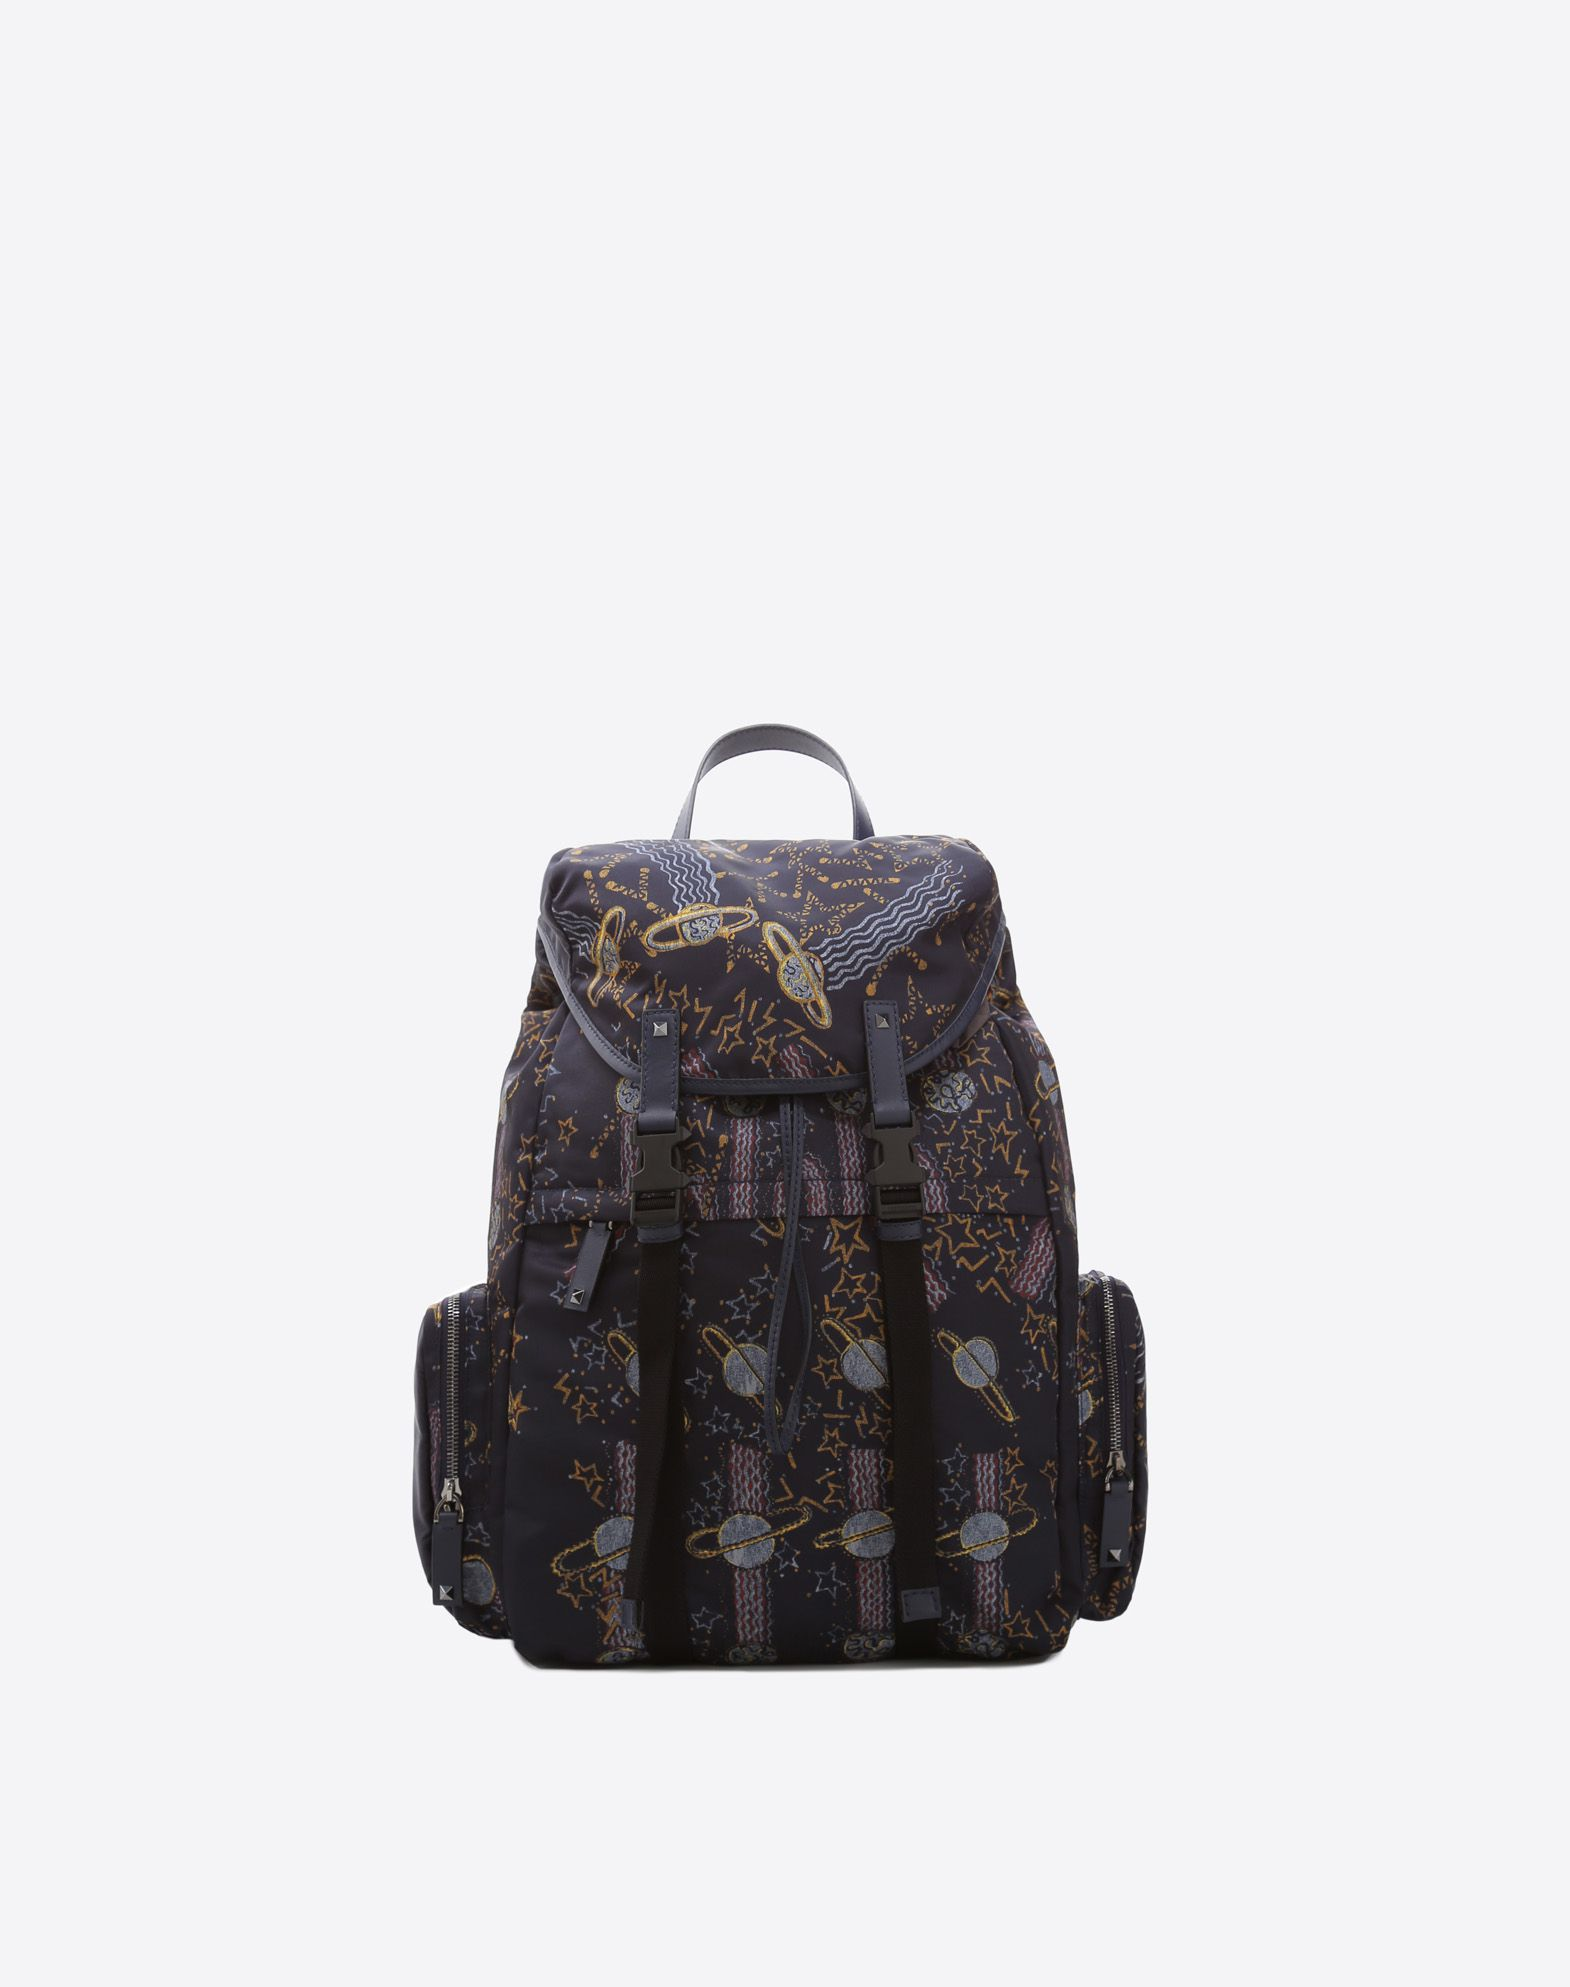 VALENTINO GARAVANI UOMO Zandra Lunar Punk Large Backpack Backpack U f